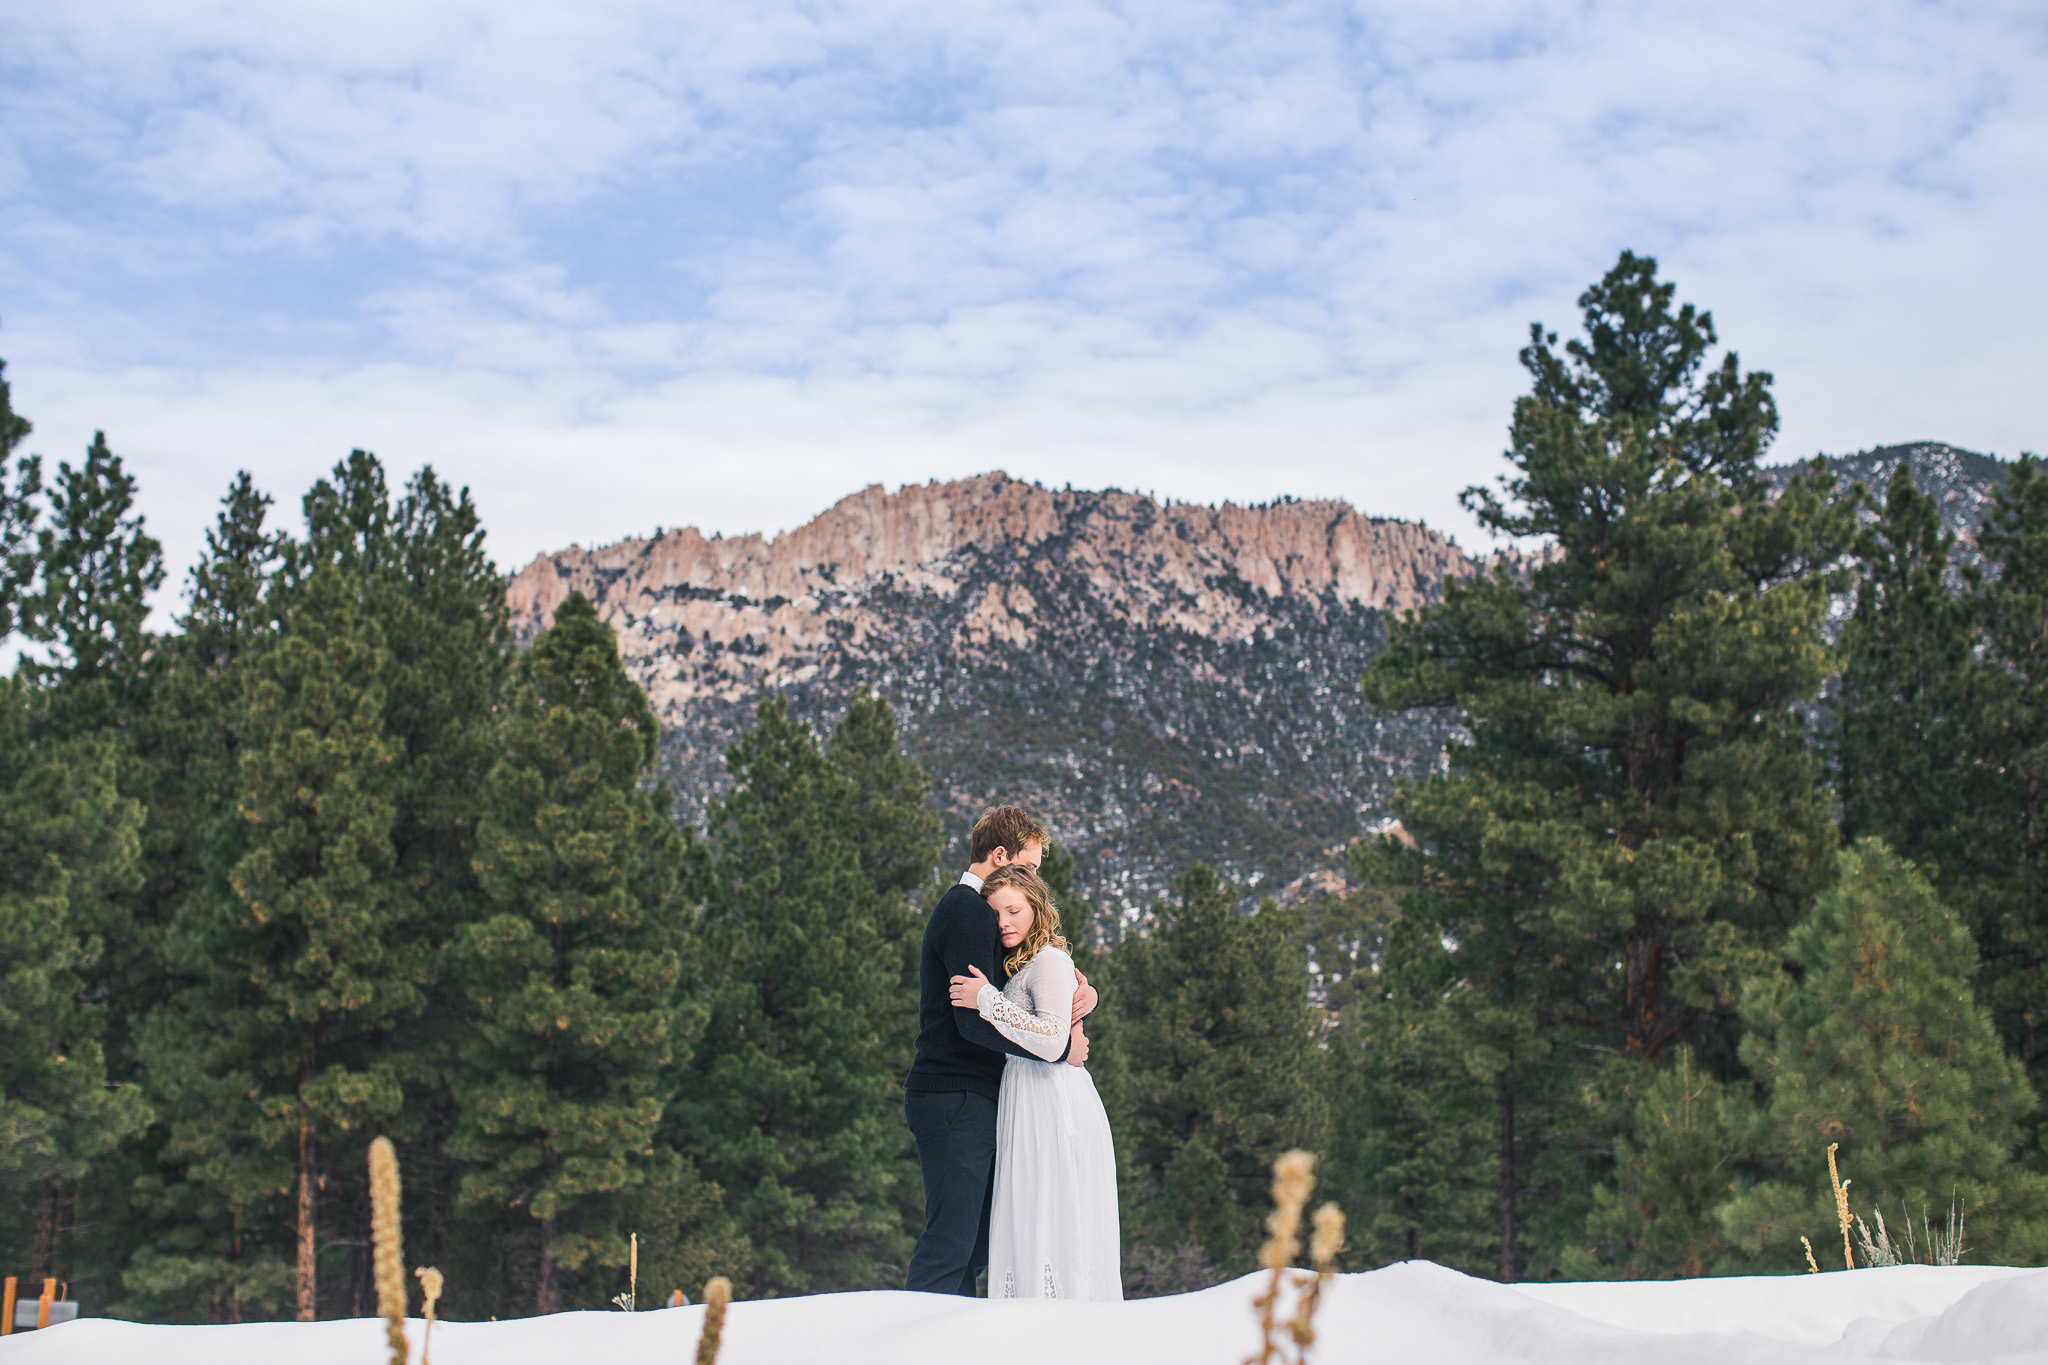 Bride and groom embrace in the snow during their Utah adventure wedding